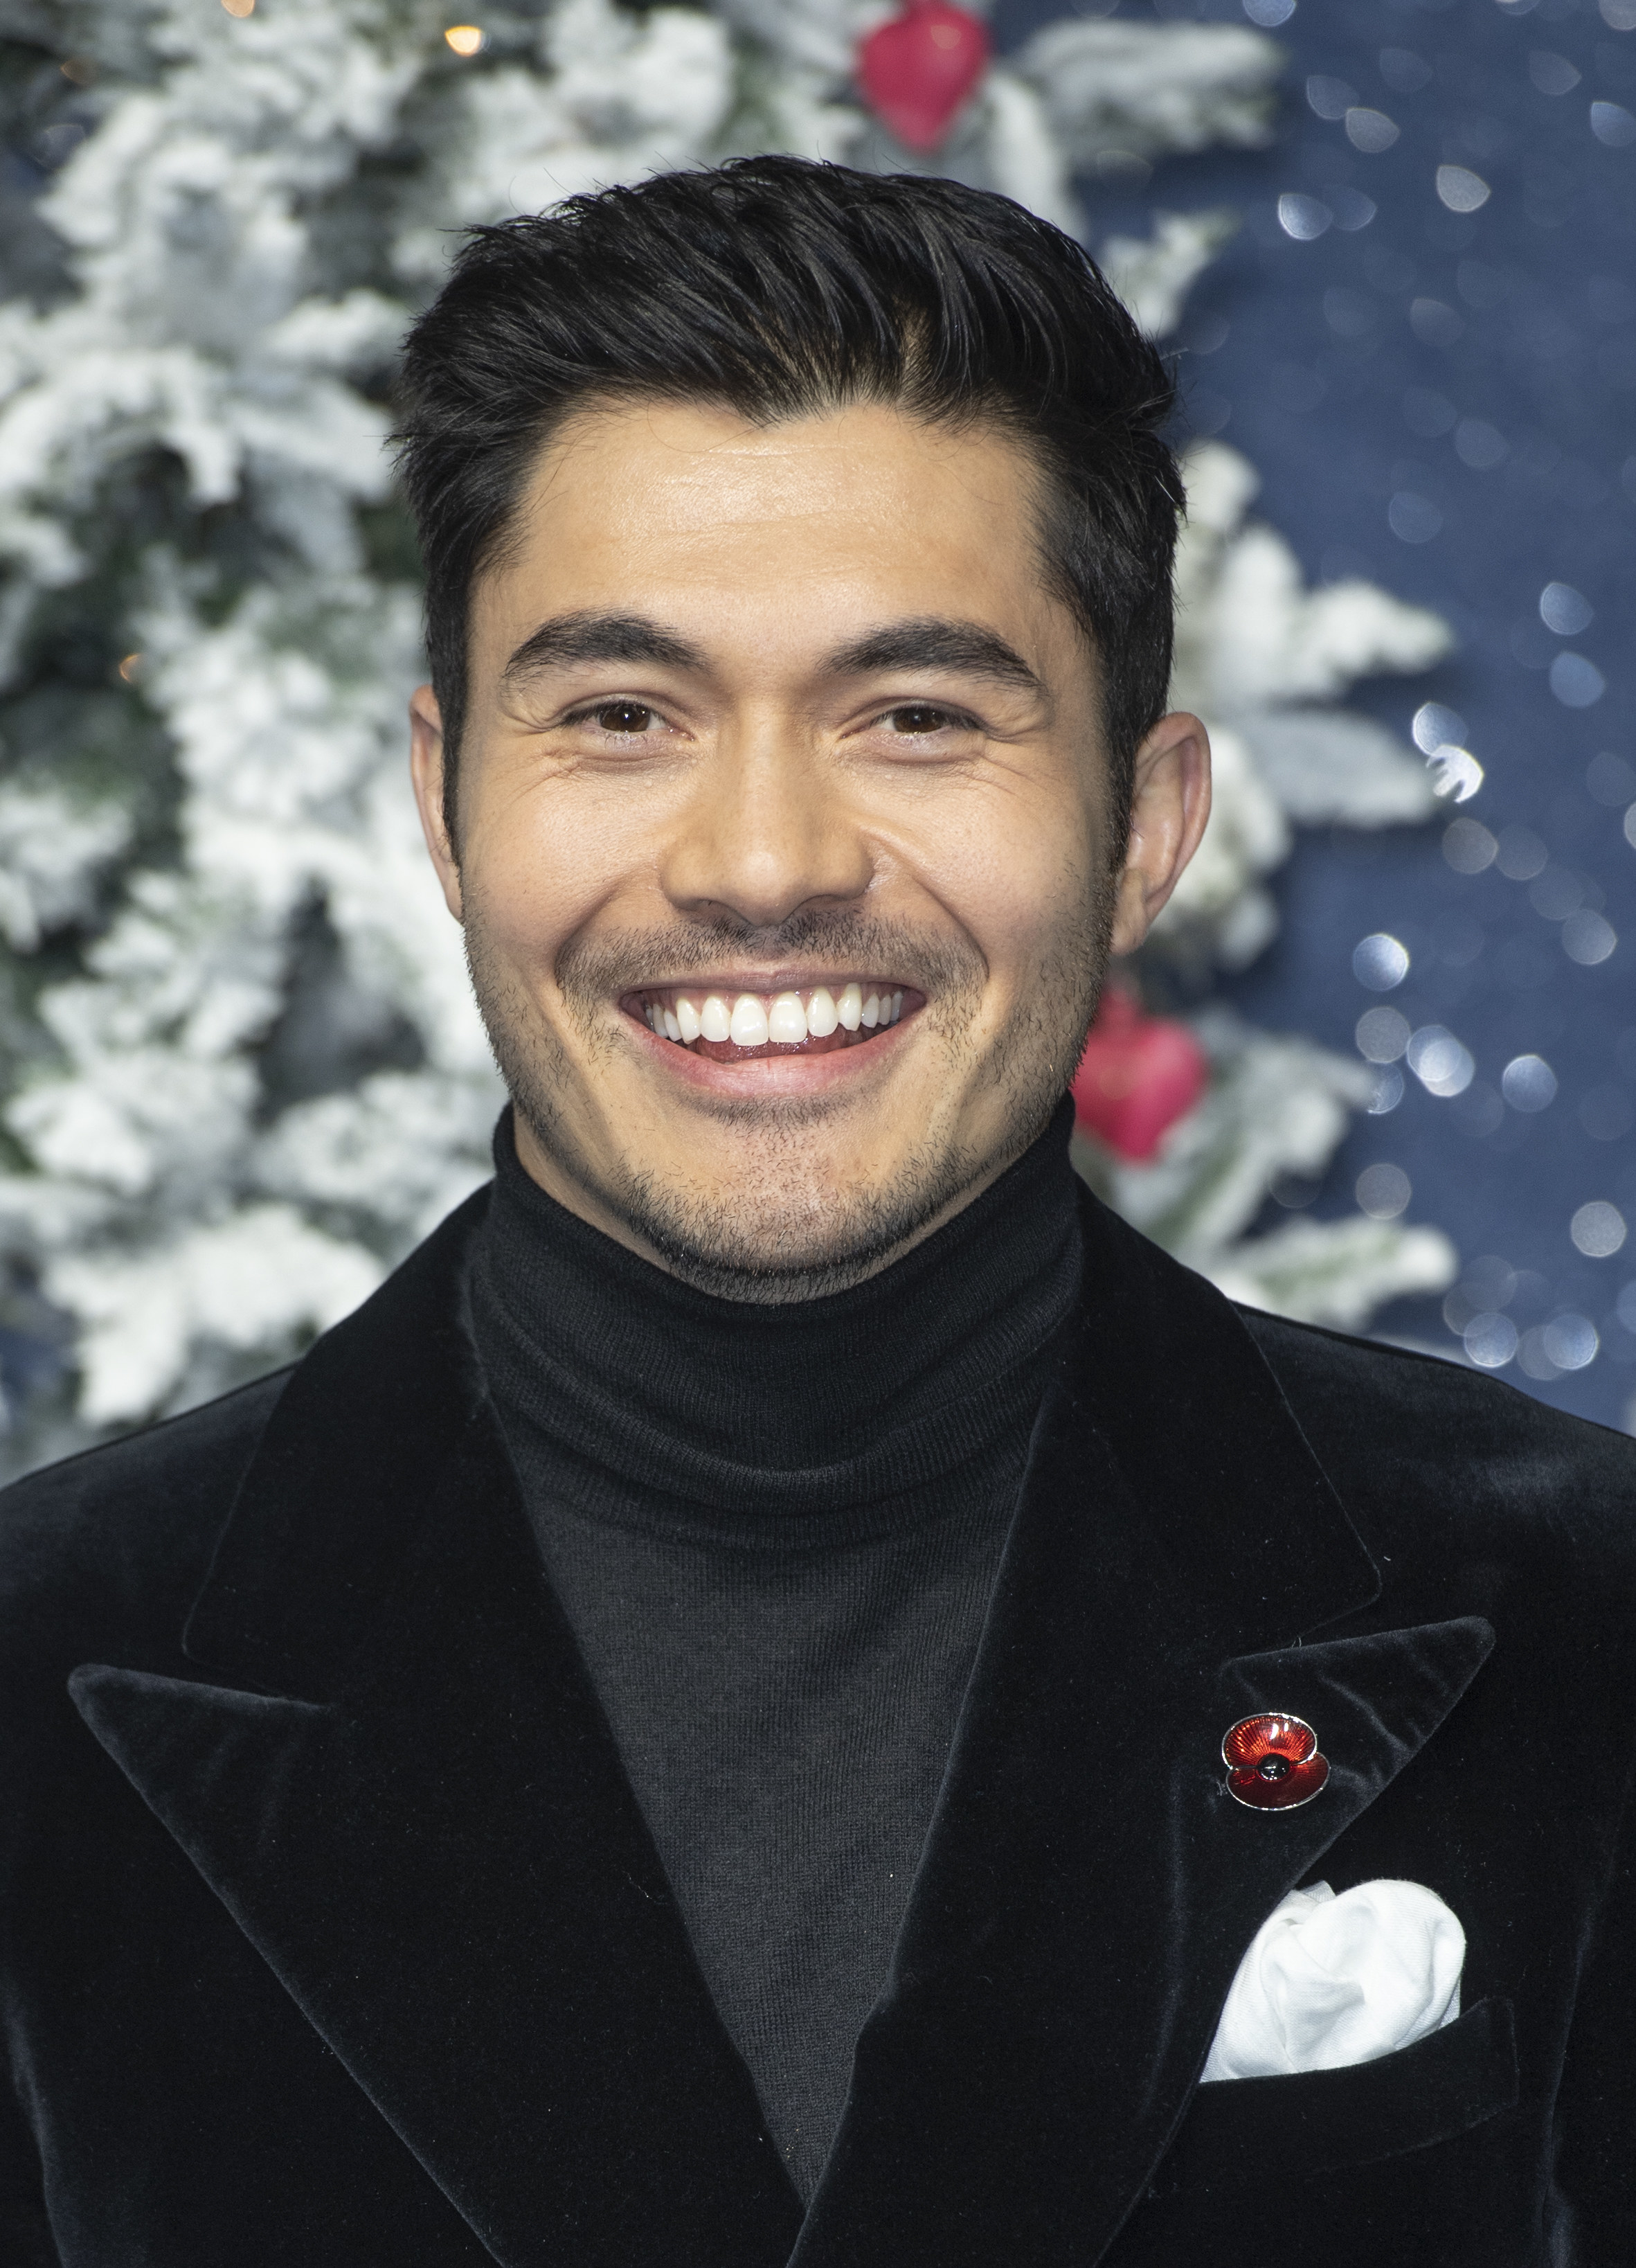 Henry Golding in a turtleneck and suit, smiling